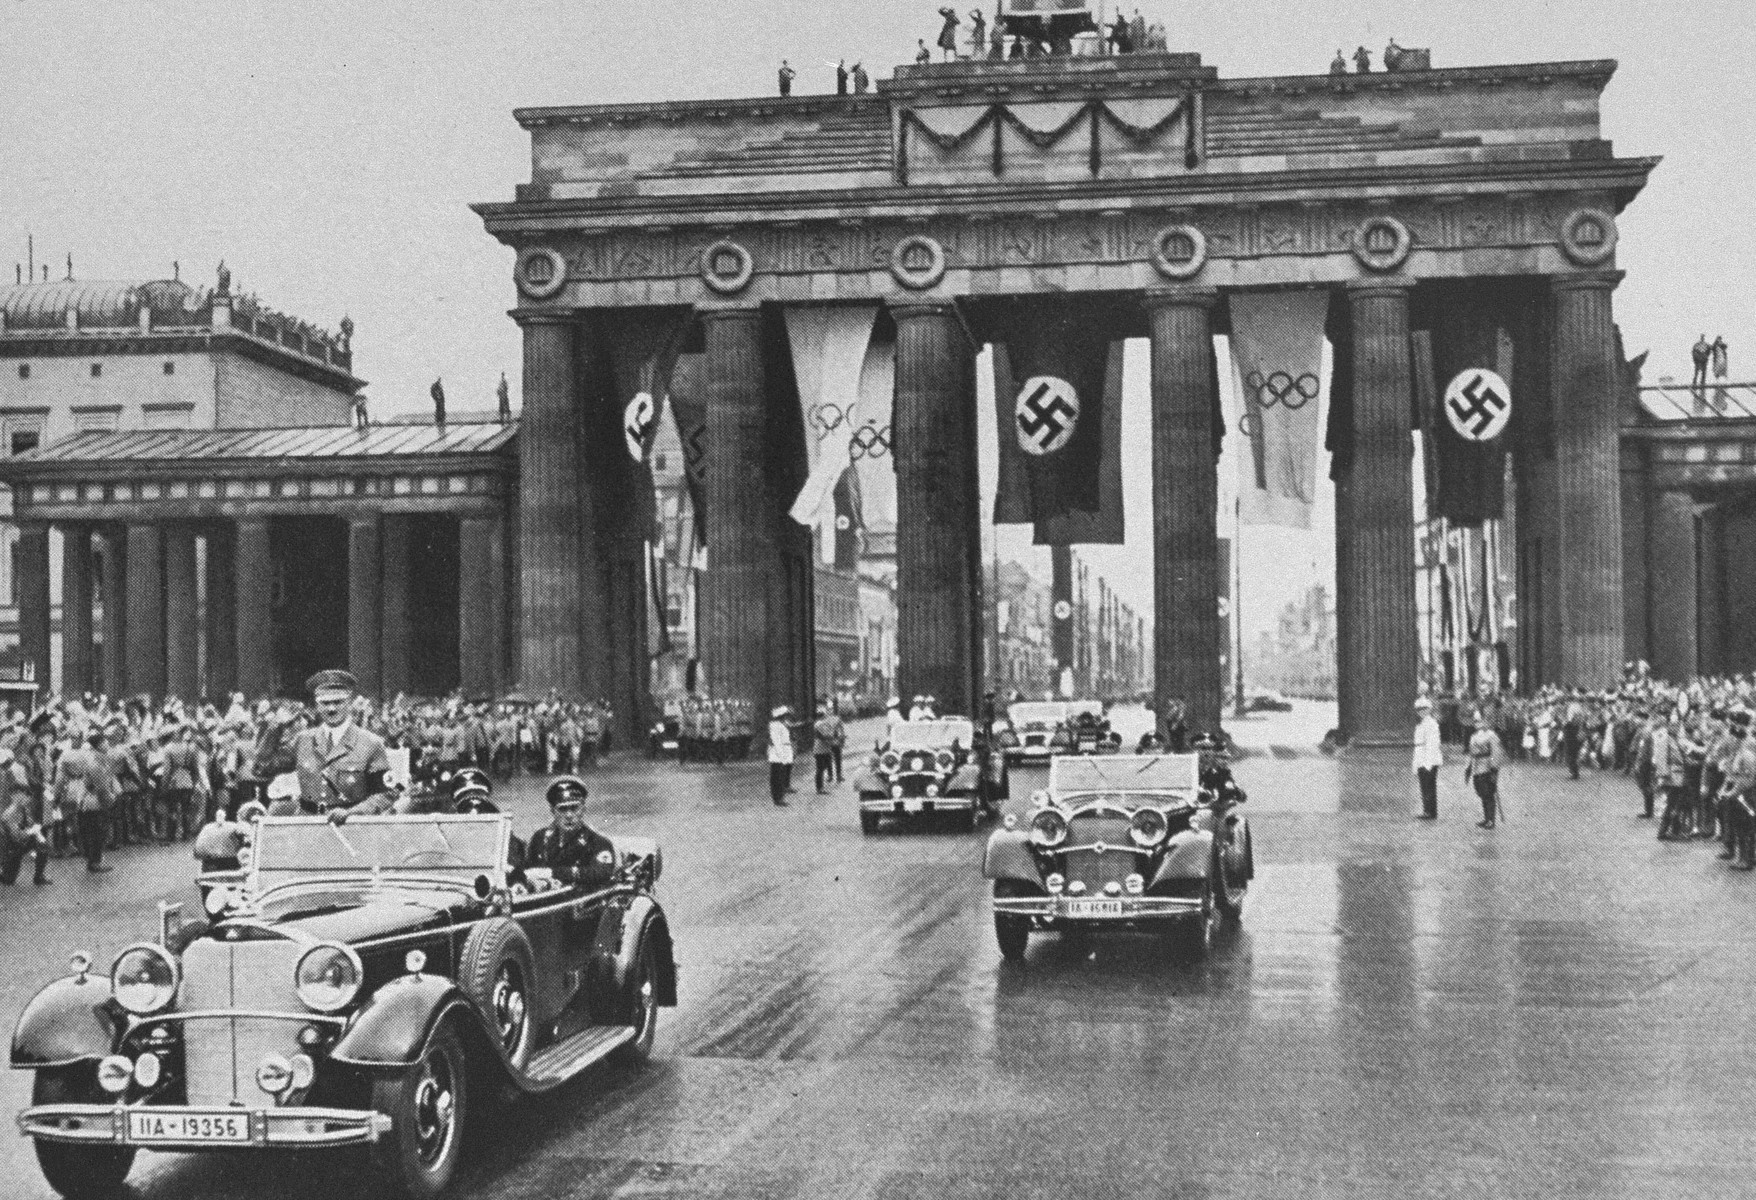 Adolf Hitler crosses Berlin in his car on his way to the Olympic stadium for the opening of the 1936 Olympic games